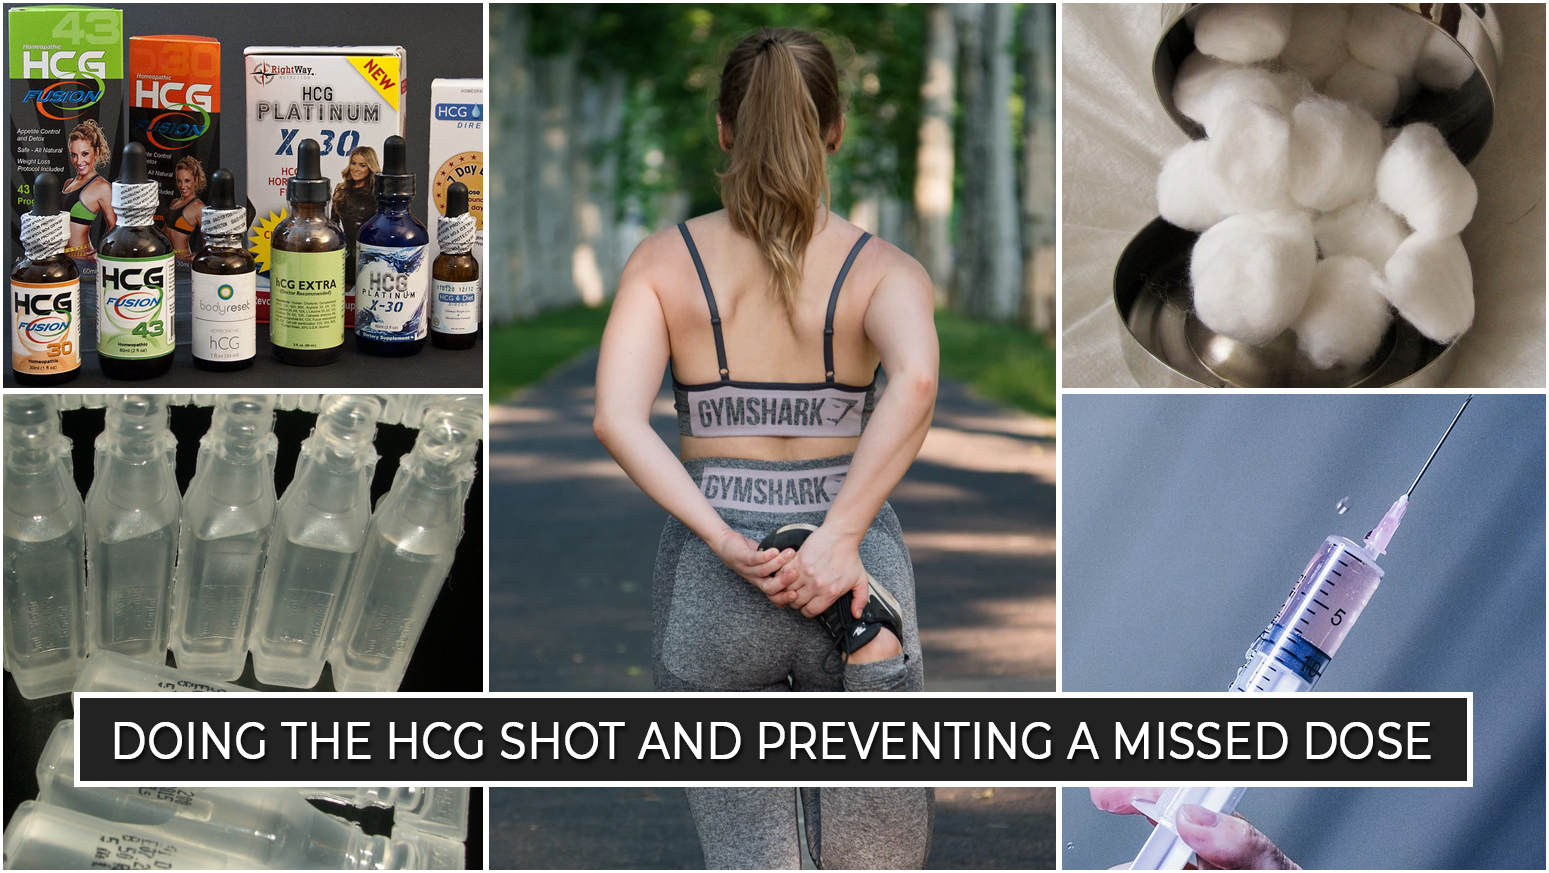 DOING THE HCG SHOT AND PREVENTING A MISSED DOSE